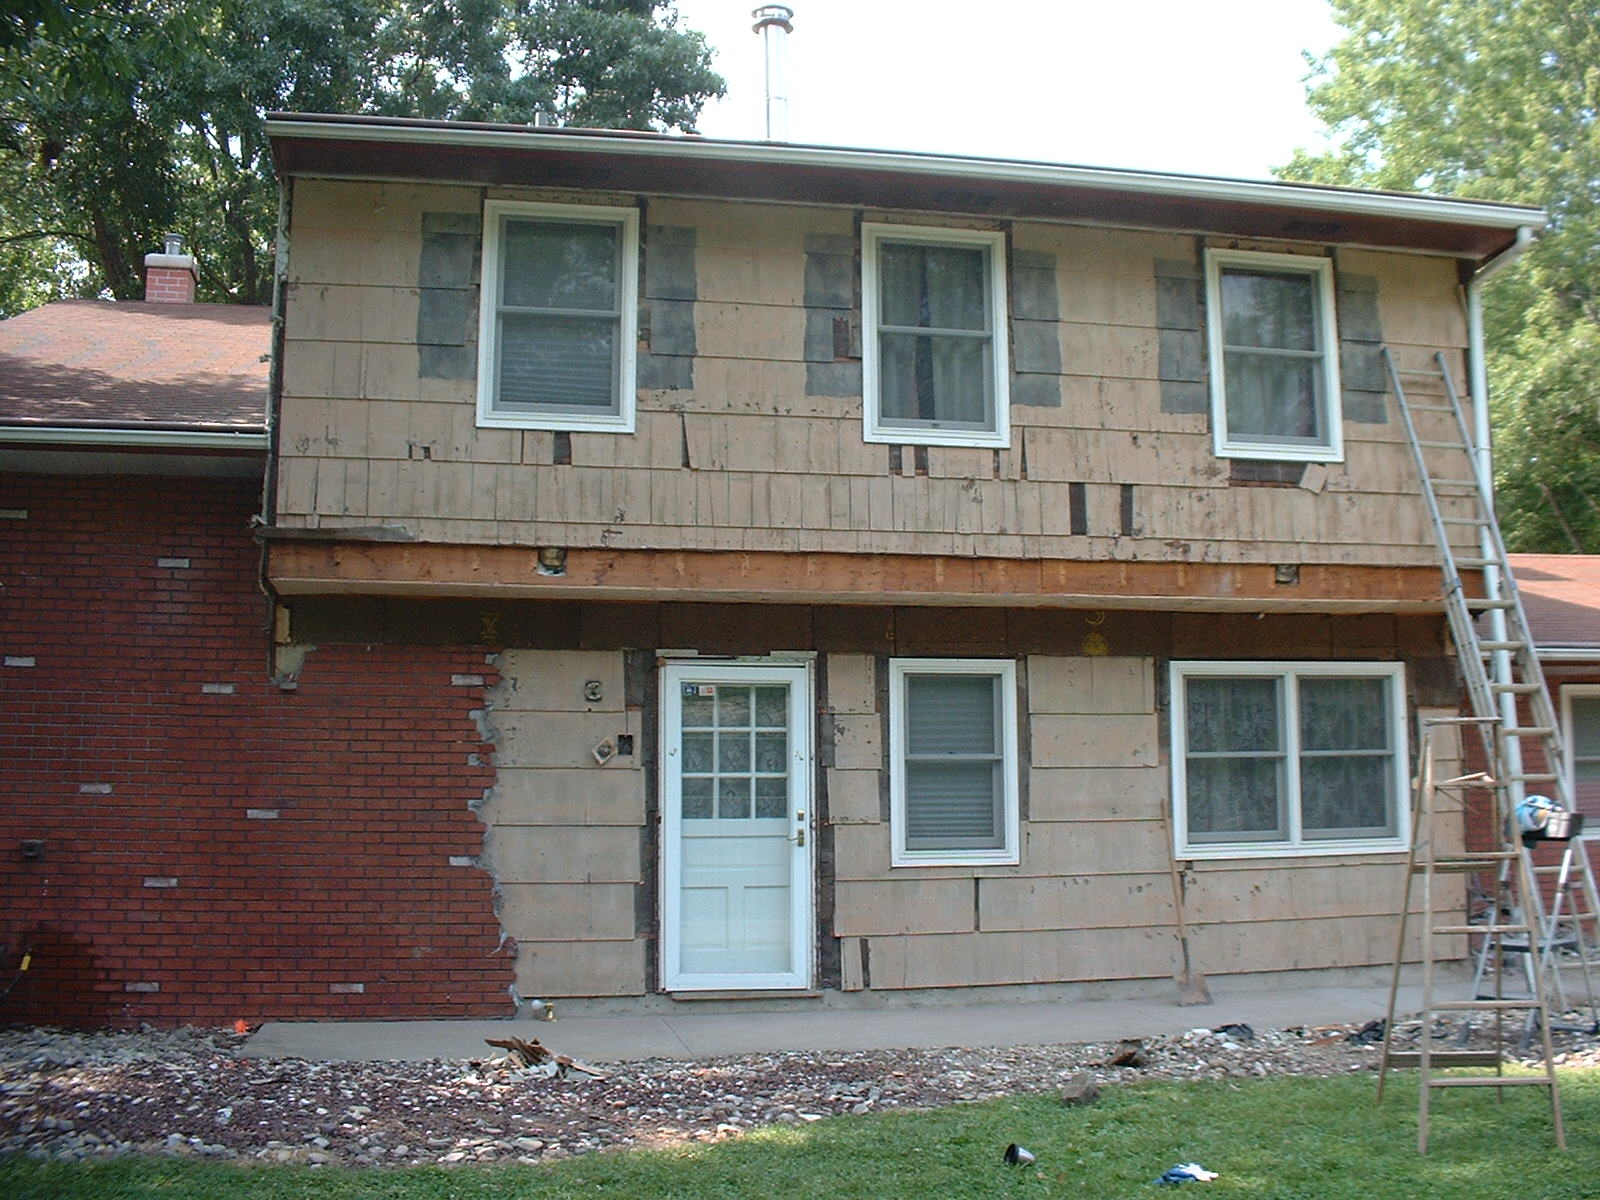 After one day the stucco is half off and the porch roof is down.